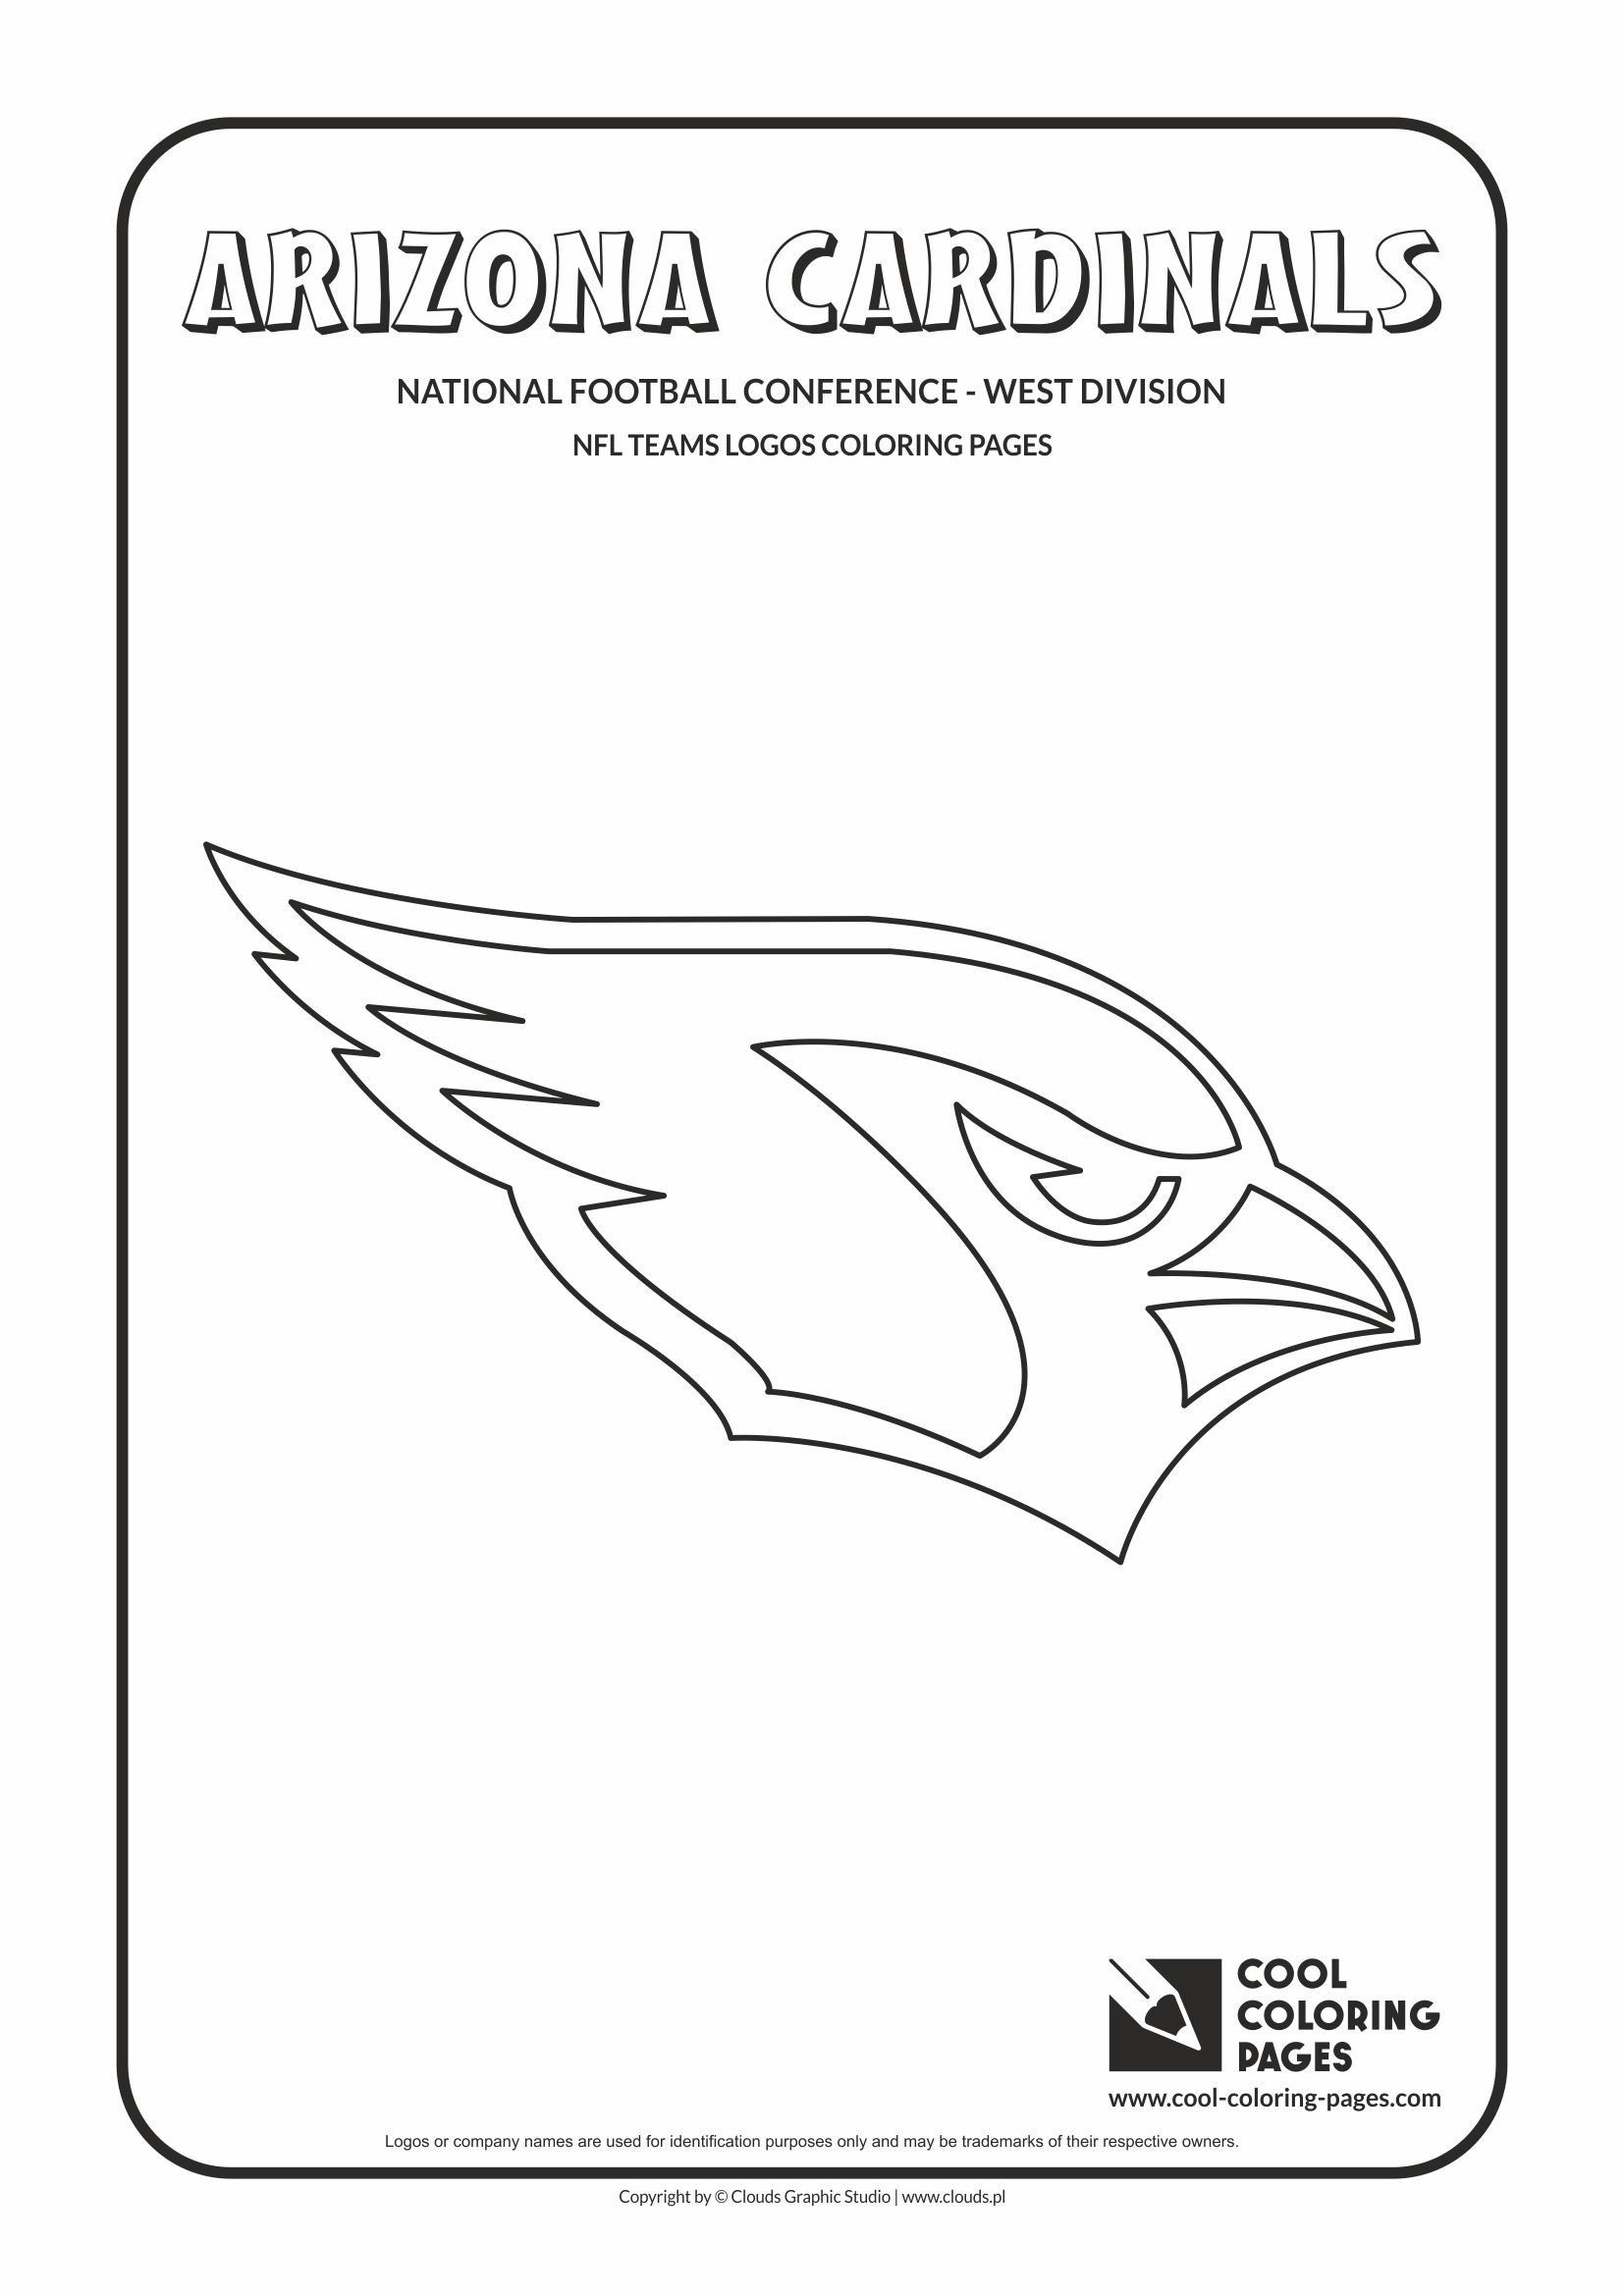 Arizona Cardinals Coloring Pages Cool Coloring Pages Arizona Cardinals Nfl American In 2020 Football Coloring Pages Sports Coloring Pages Cool Coloring Pages